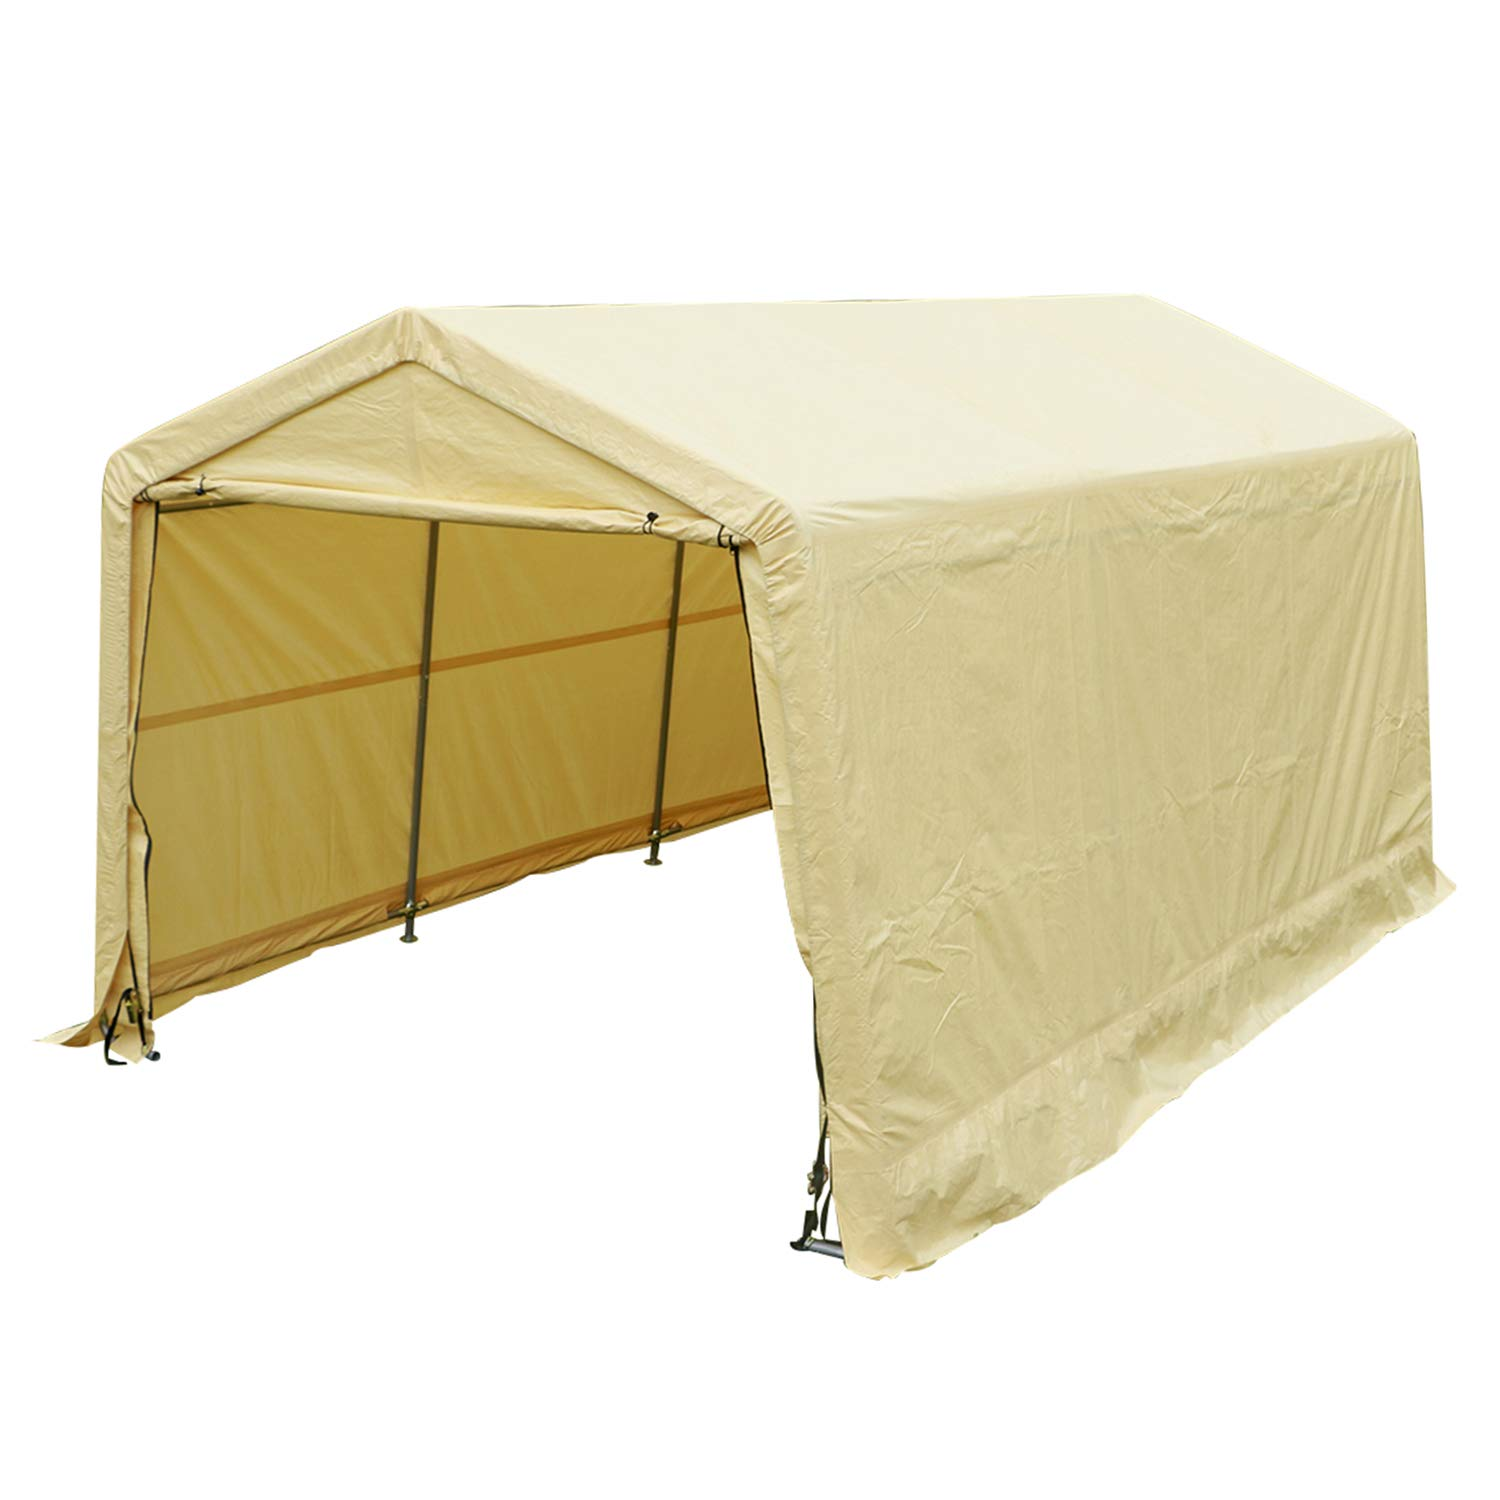 Sliverylake Auto Storage Shelter Car Garage Steel Carport Canopy Awning (10×15×8ft, Sand) AUSHG4096